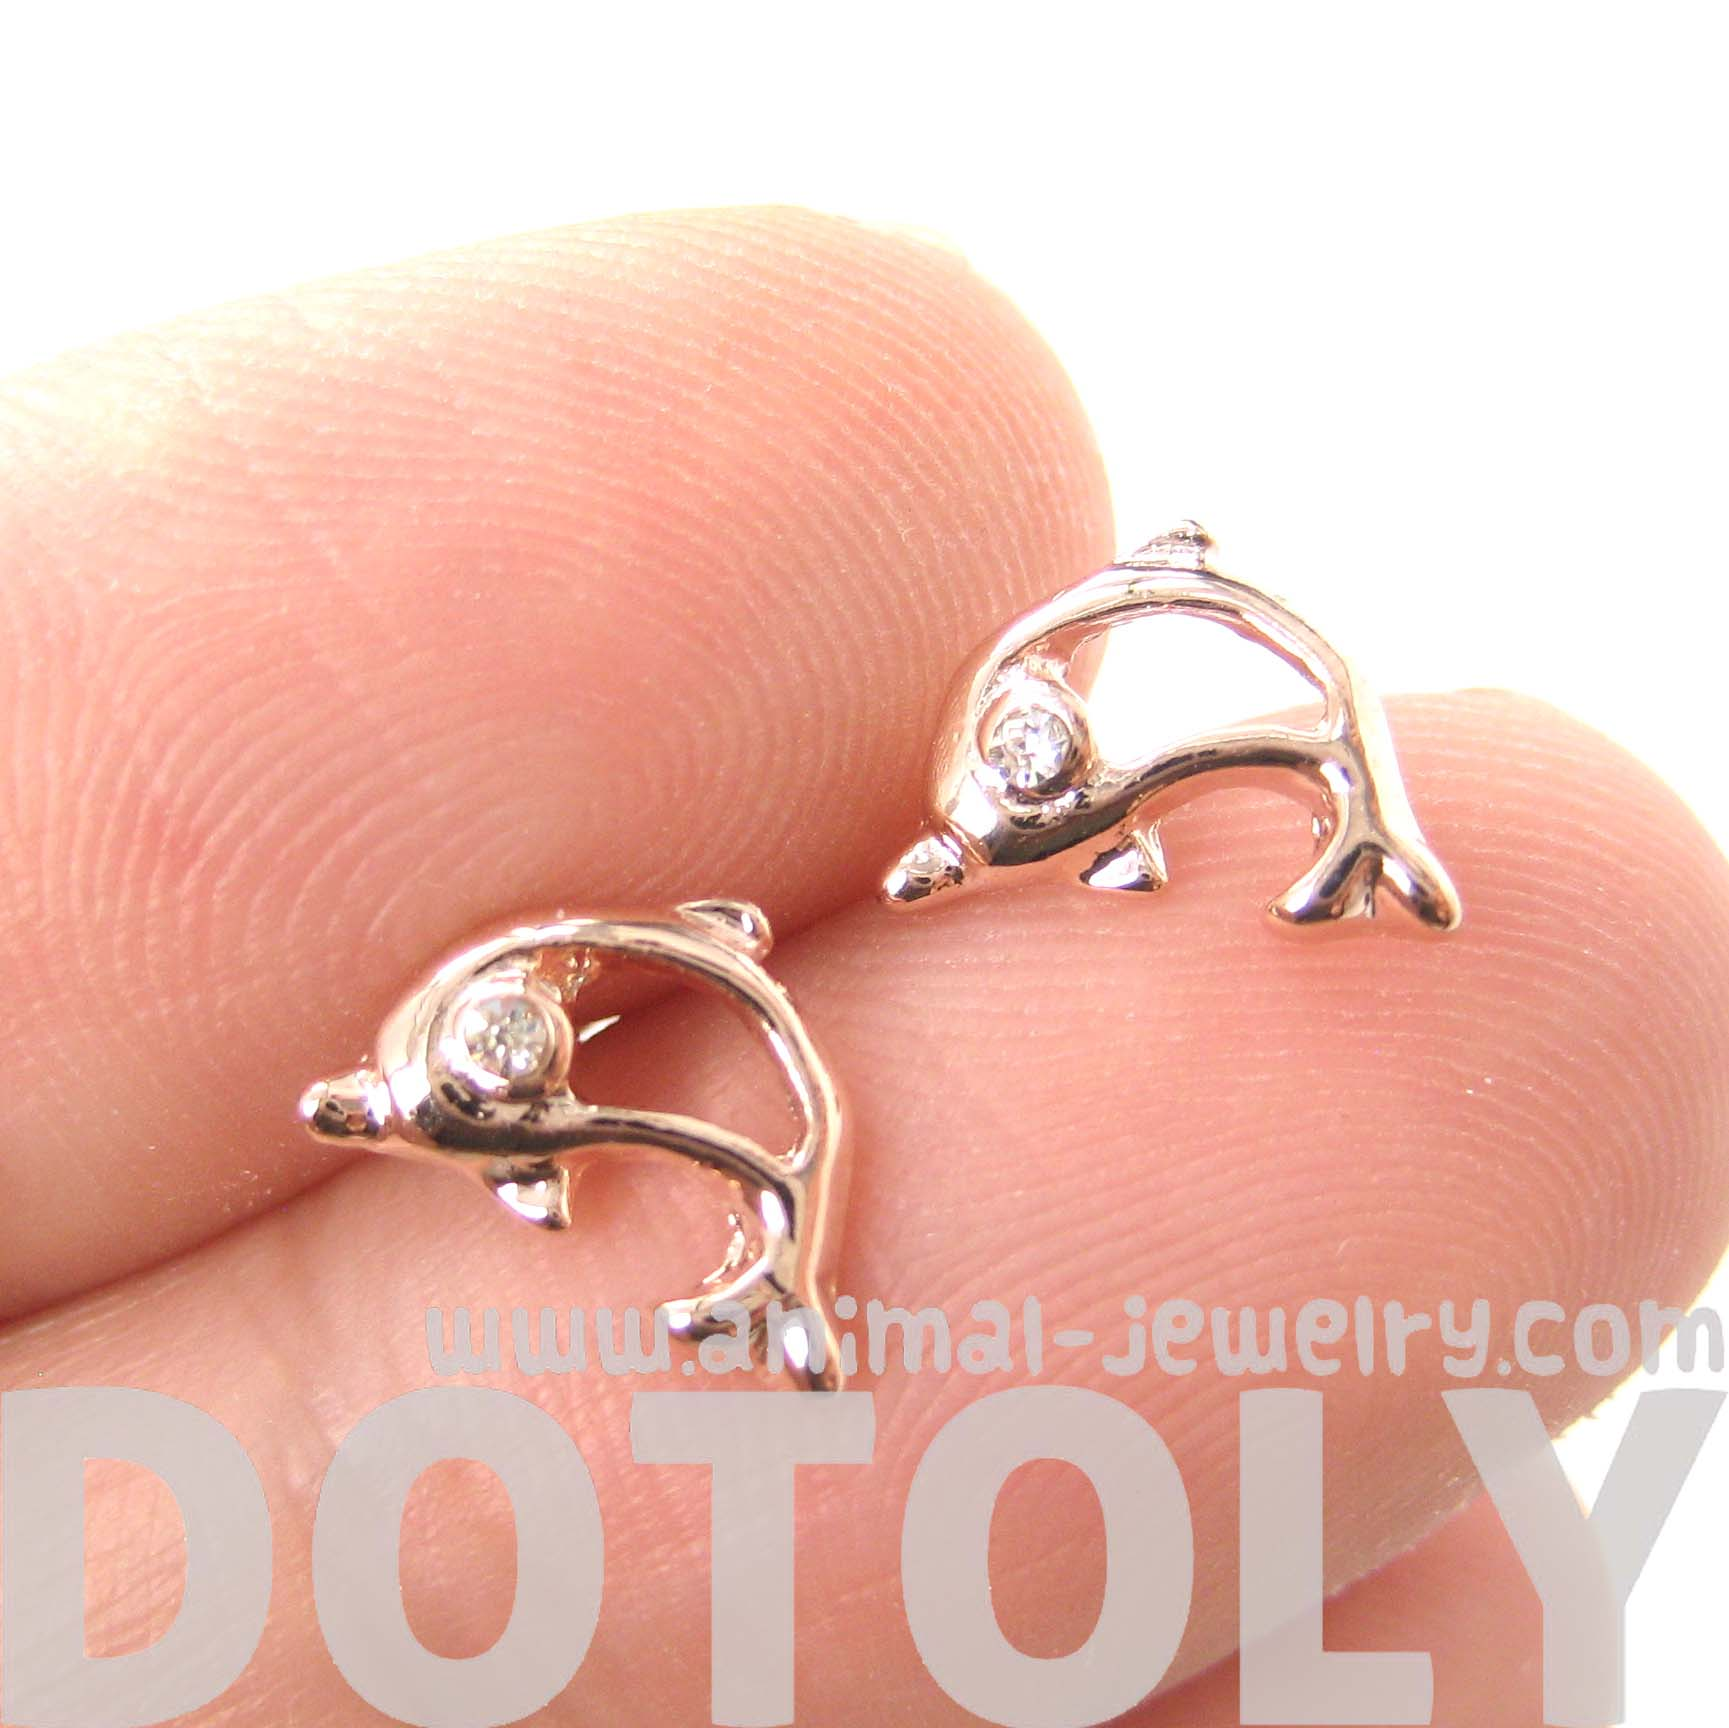 5fe21a909 ... Small Dolphin Shaped Sea Creature Stud Earrings In Rose Gold -  Thumbnail 2